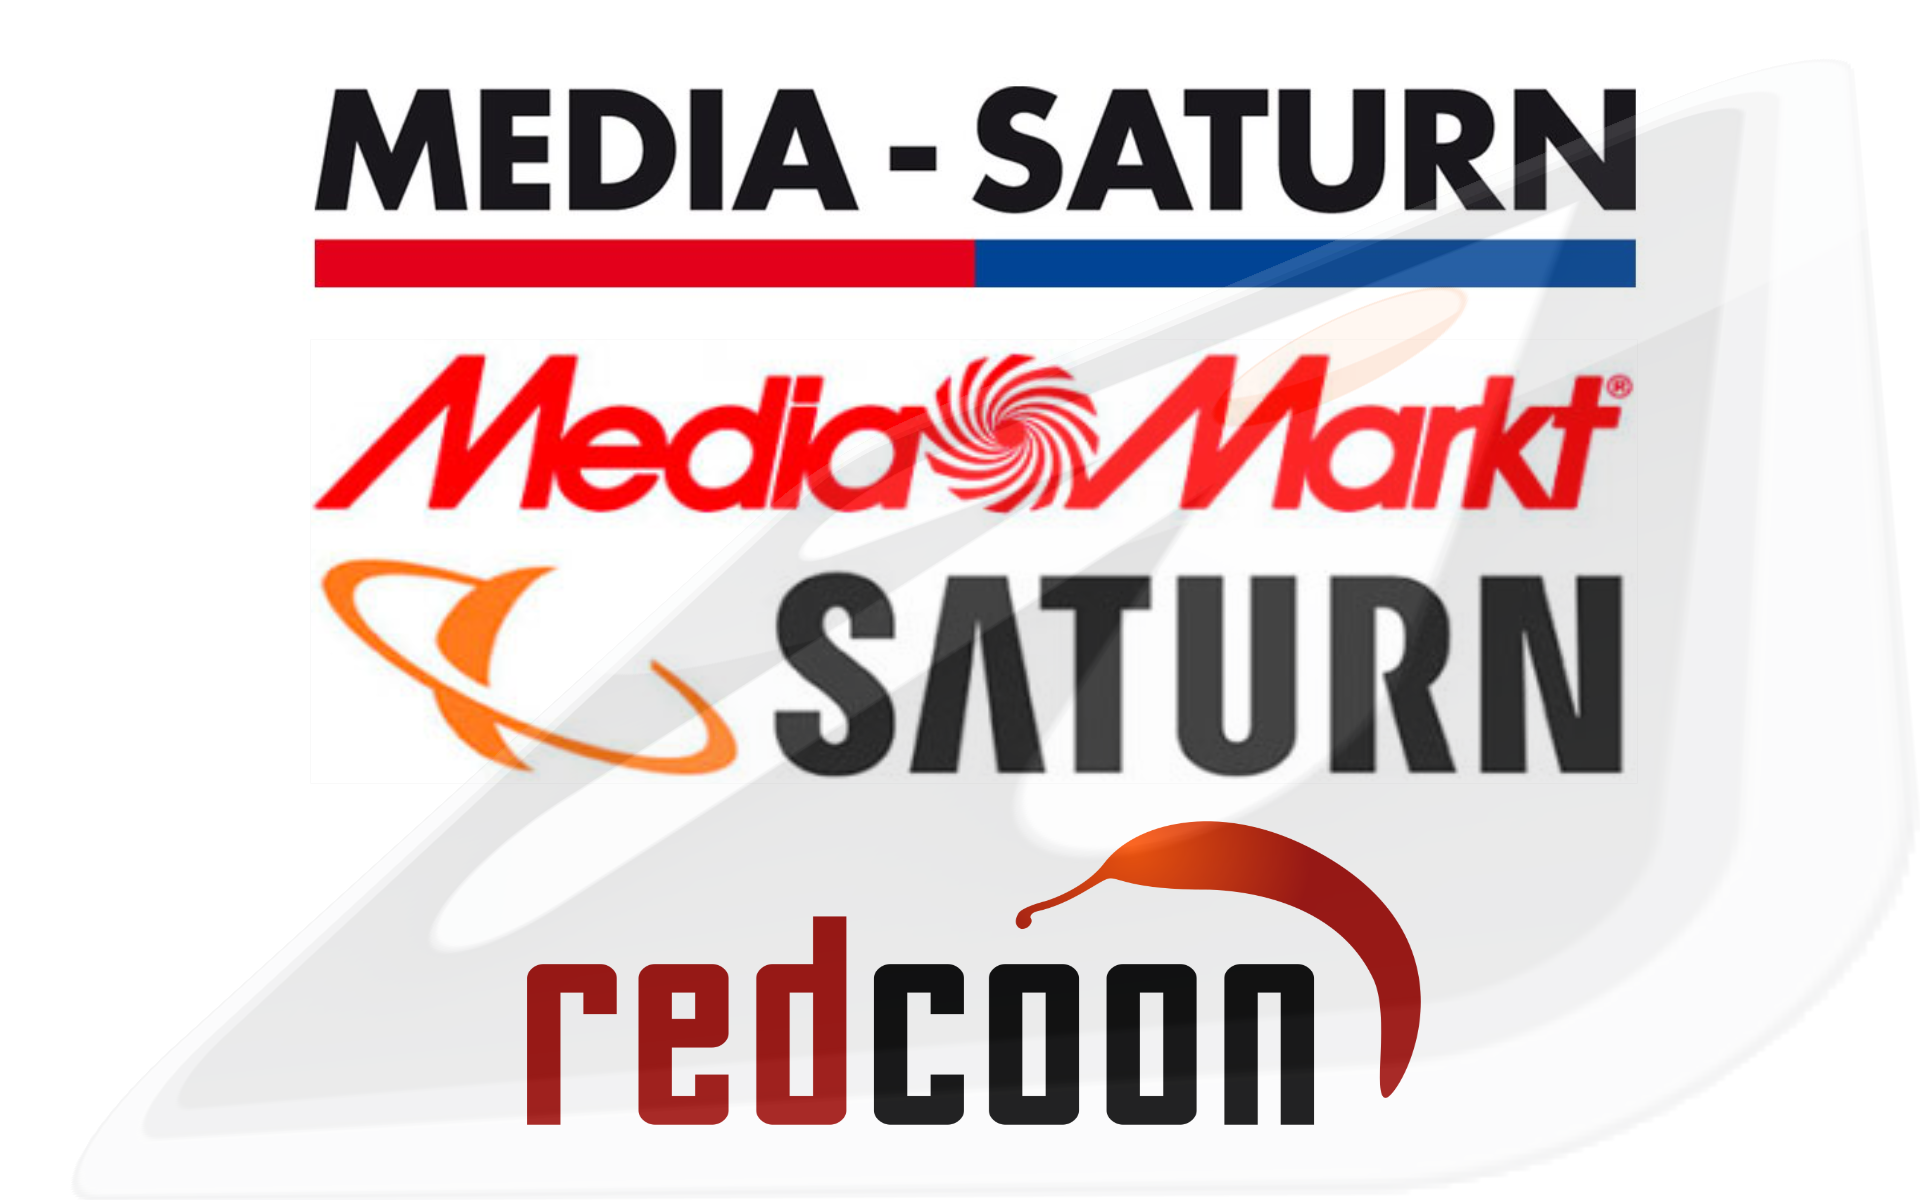 Media-Saturn - Mediamarkt - Saturn - redcoon - Media & IT Maue